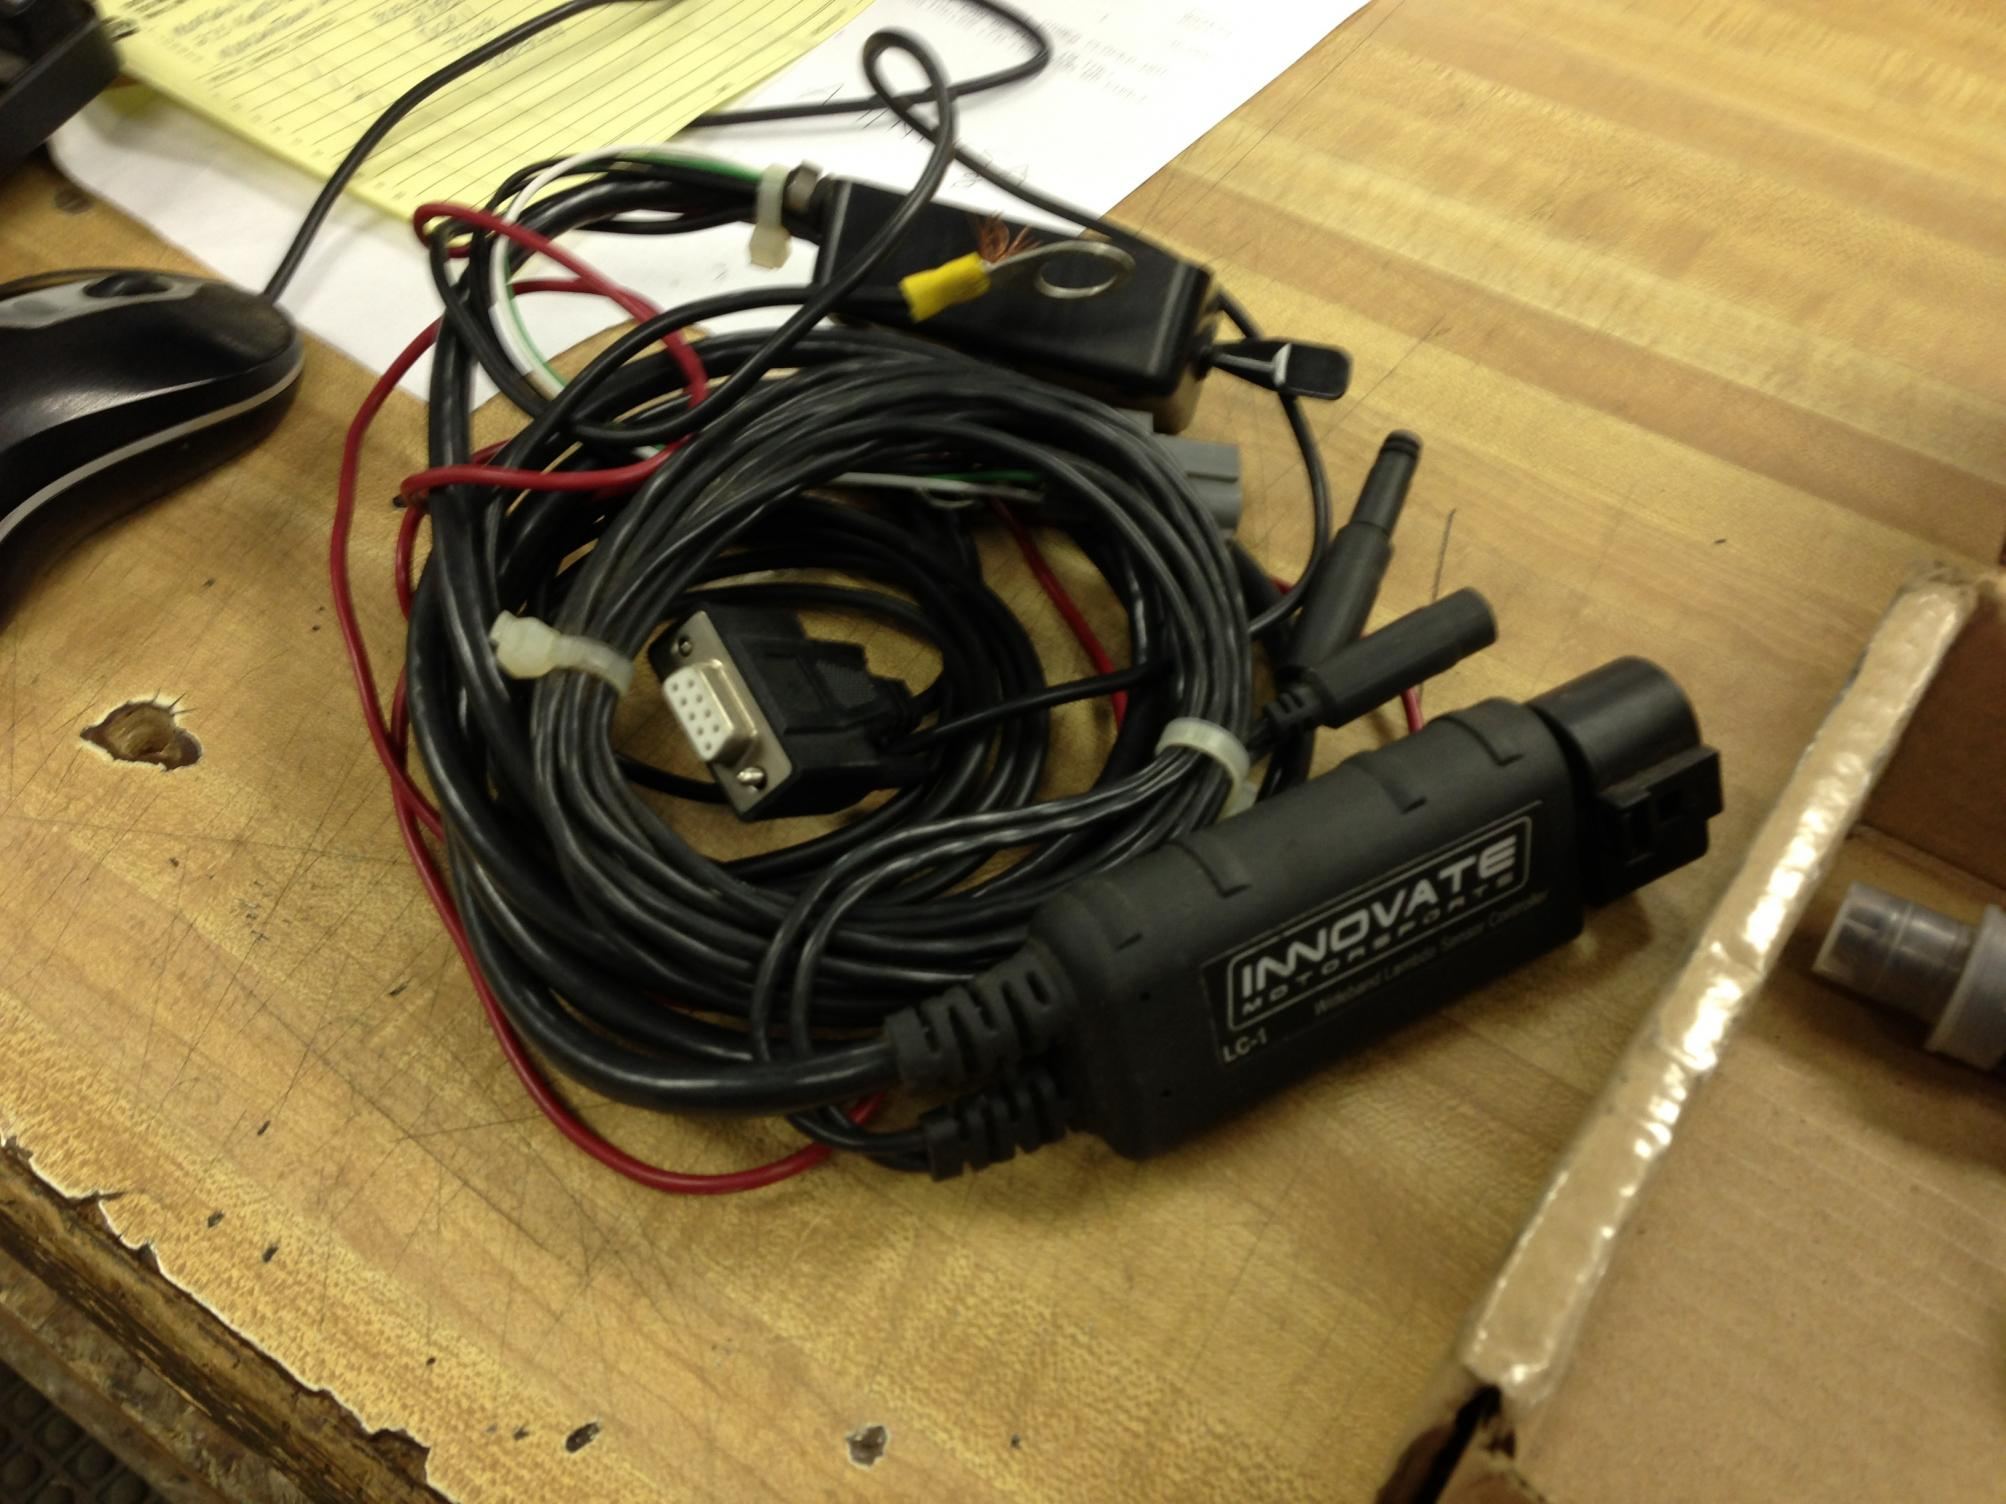 Innovate Lc1 Wideband Controller R C Tech Forums Innovative Wiring Image